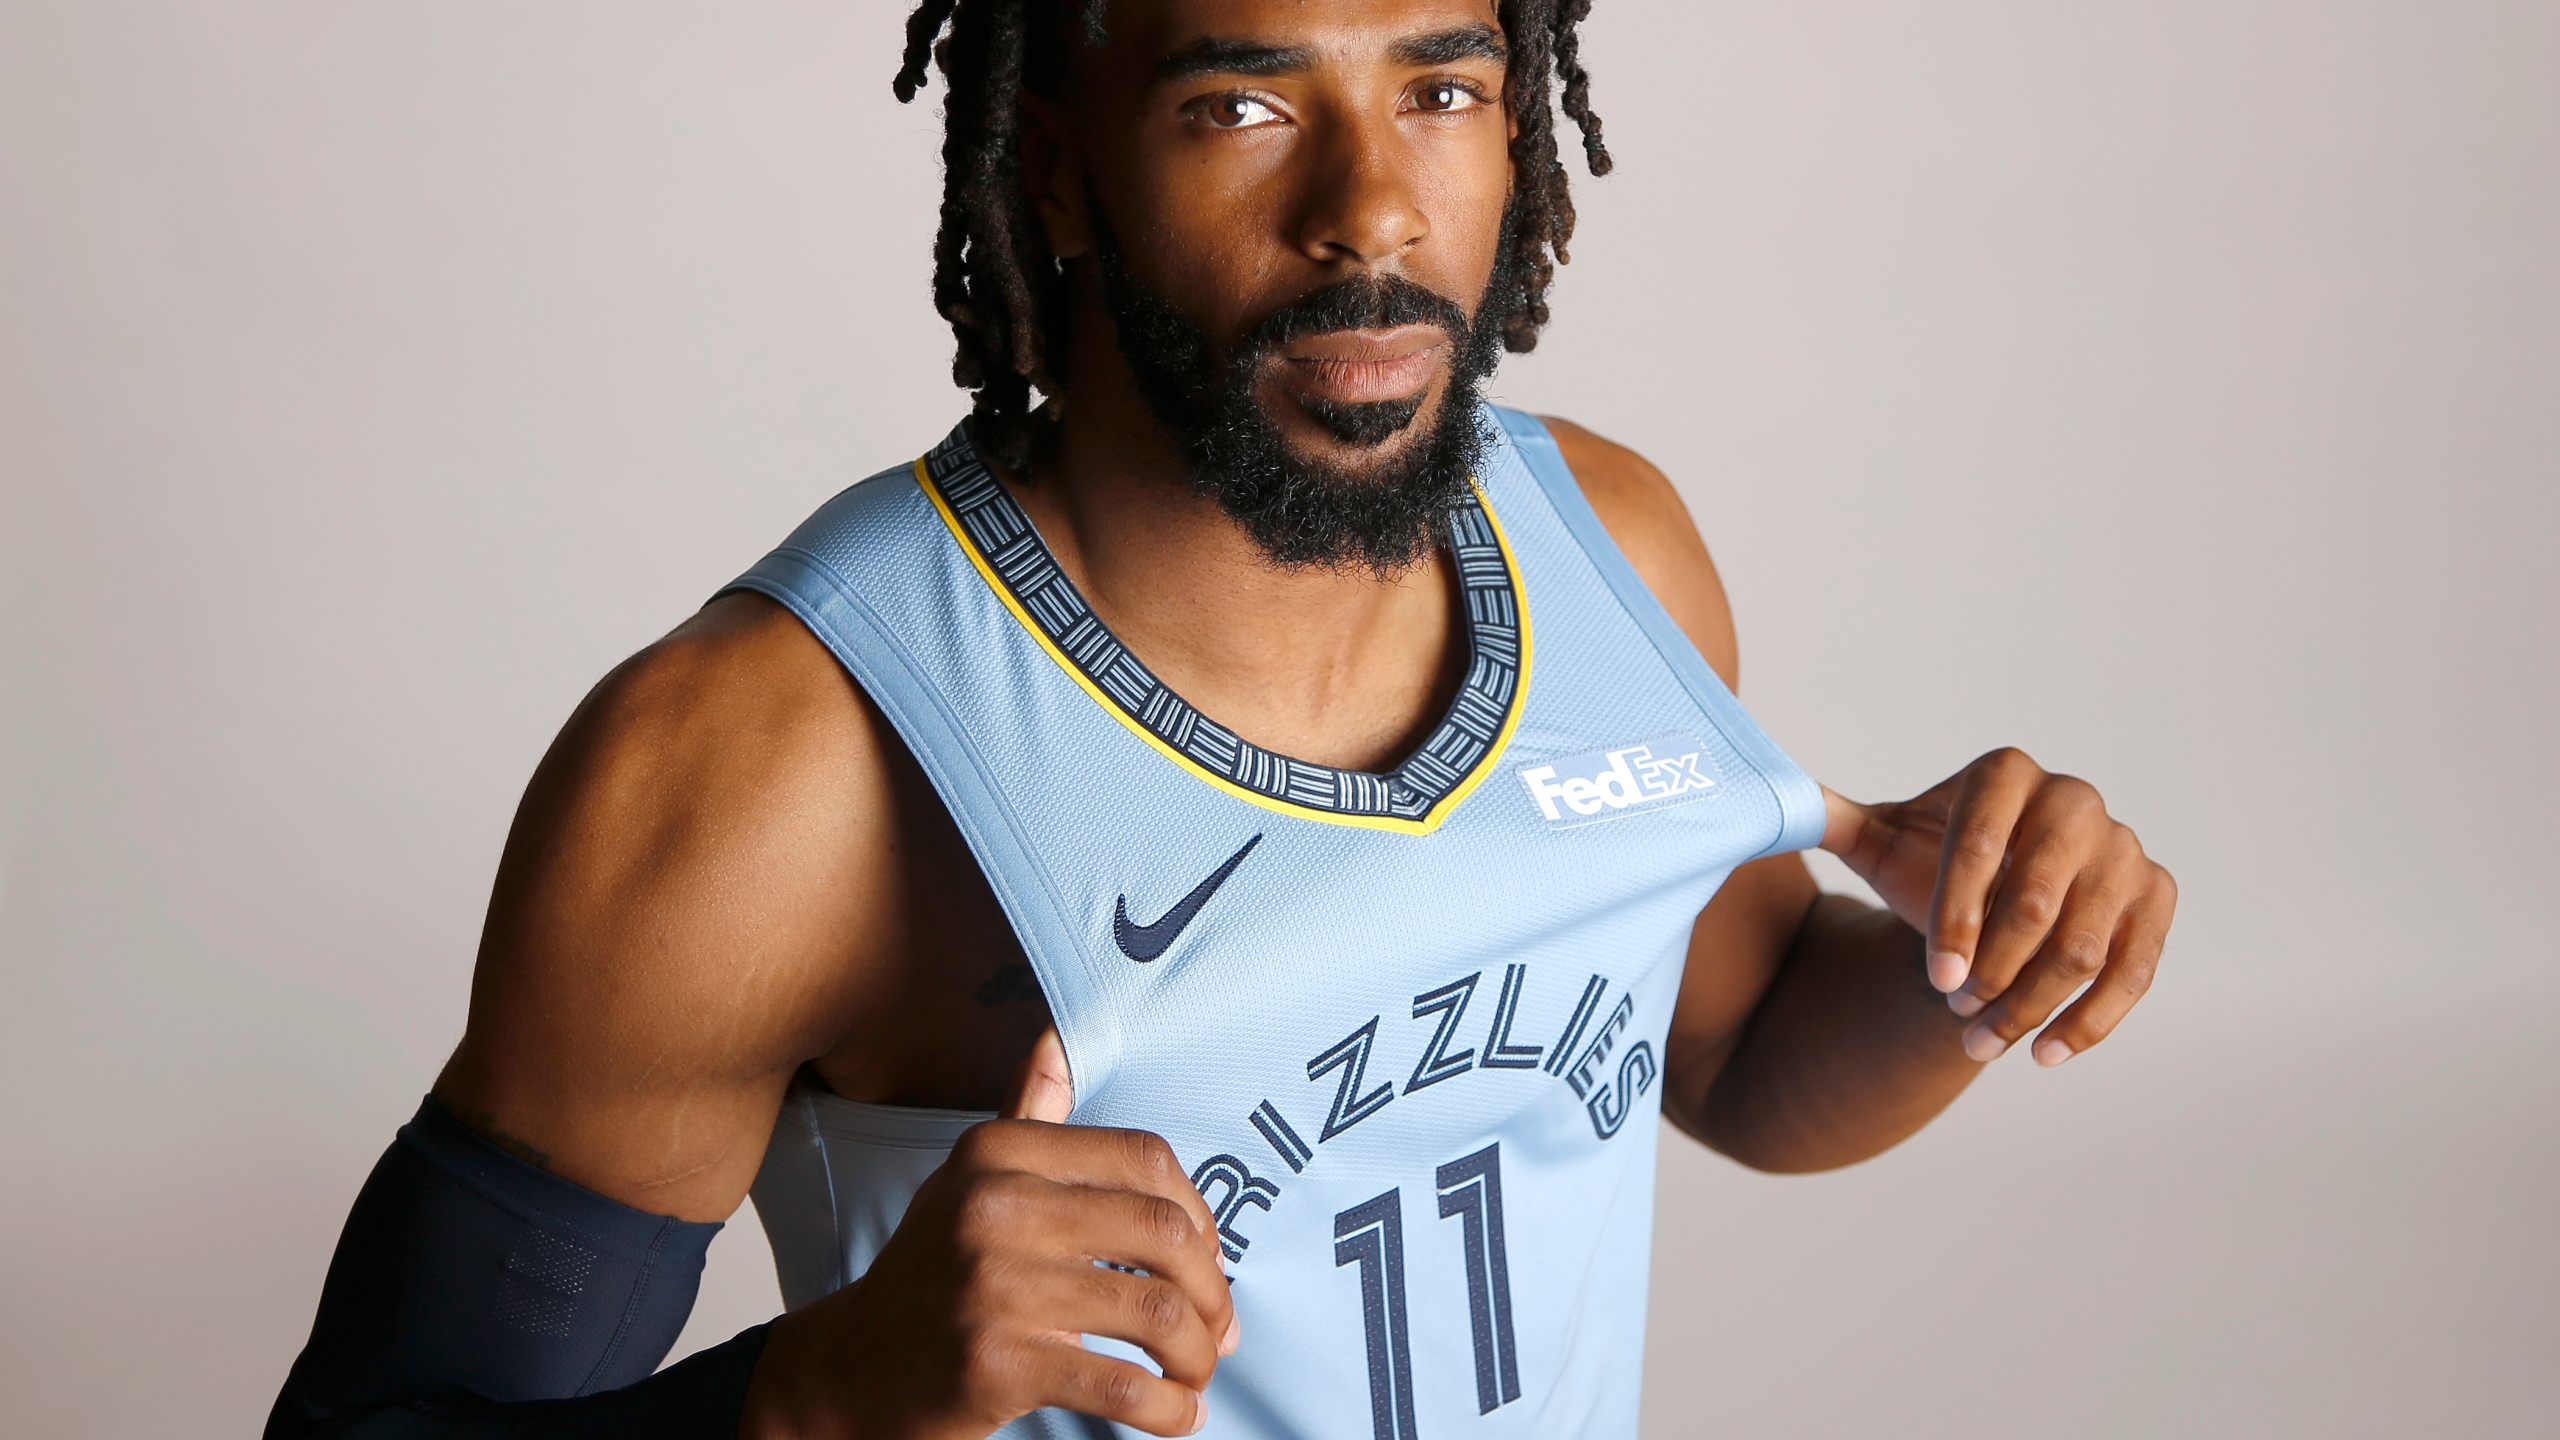 Grizzlies_Jazz_Trade_Basketball_78835-159532.jpg38667099